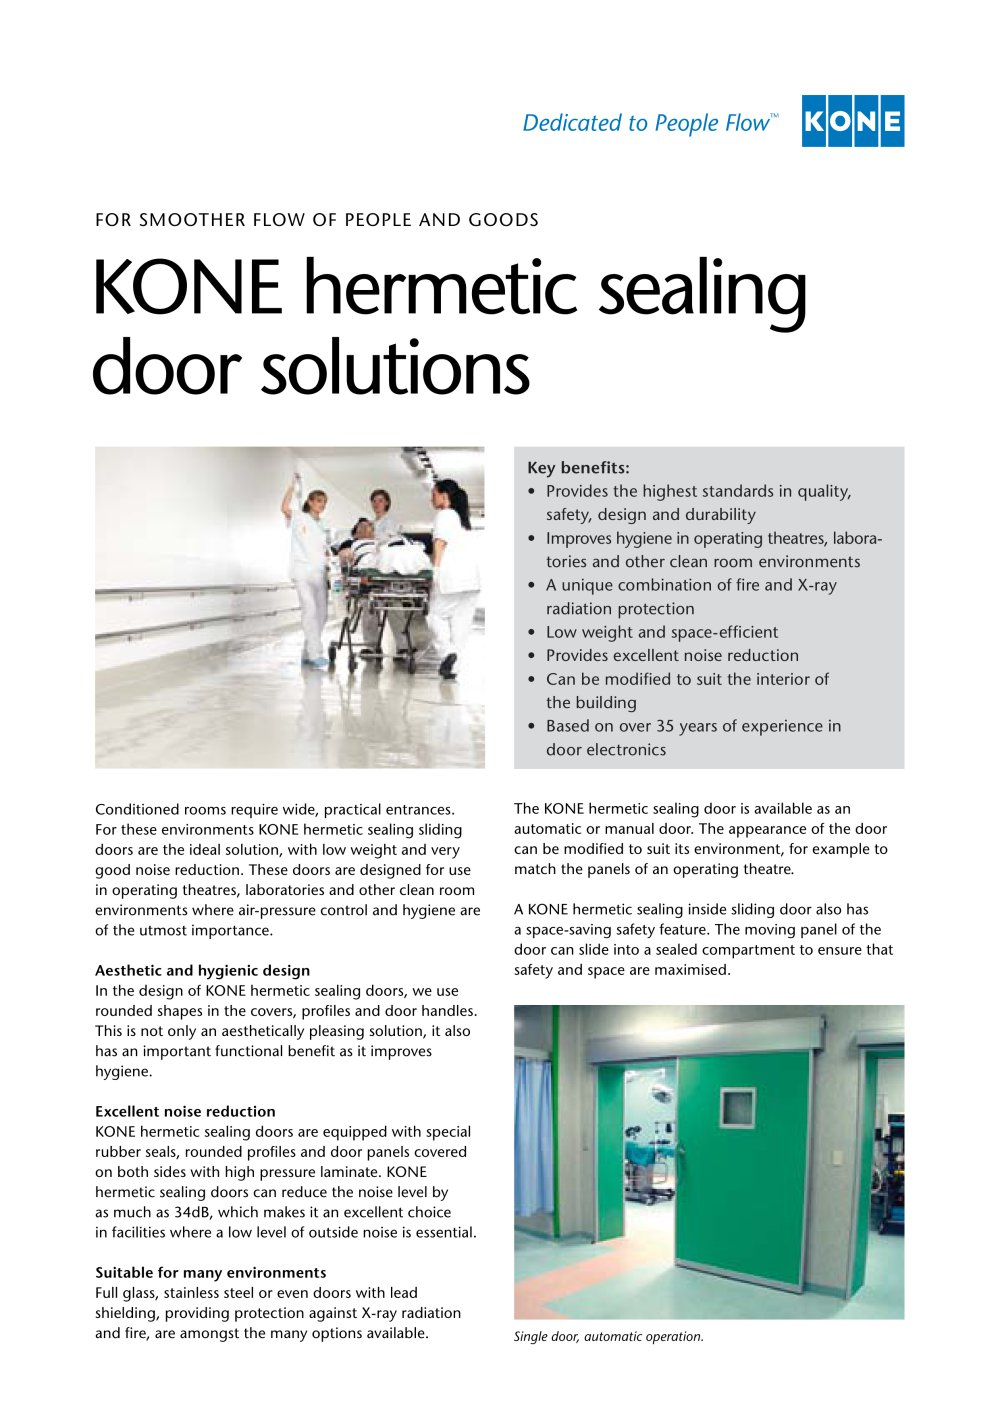 KONE hermetic sealing door solutions - 1 / 2 Pages  sc 1 st  Catalogues Medicalexpo & KONE hermetic sealing door solutions - KONE - PDF Catalogue ... pezcame.com